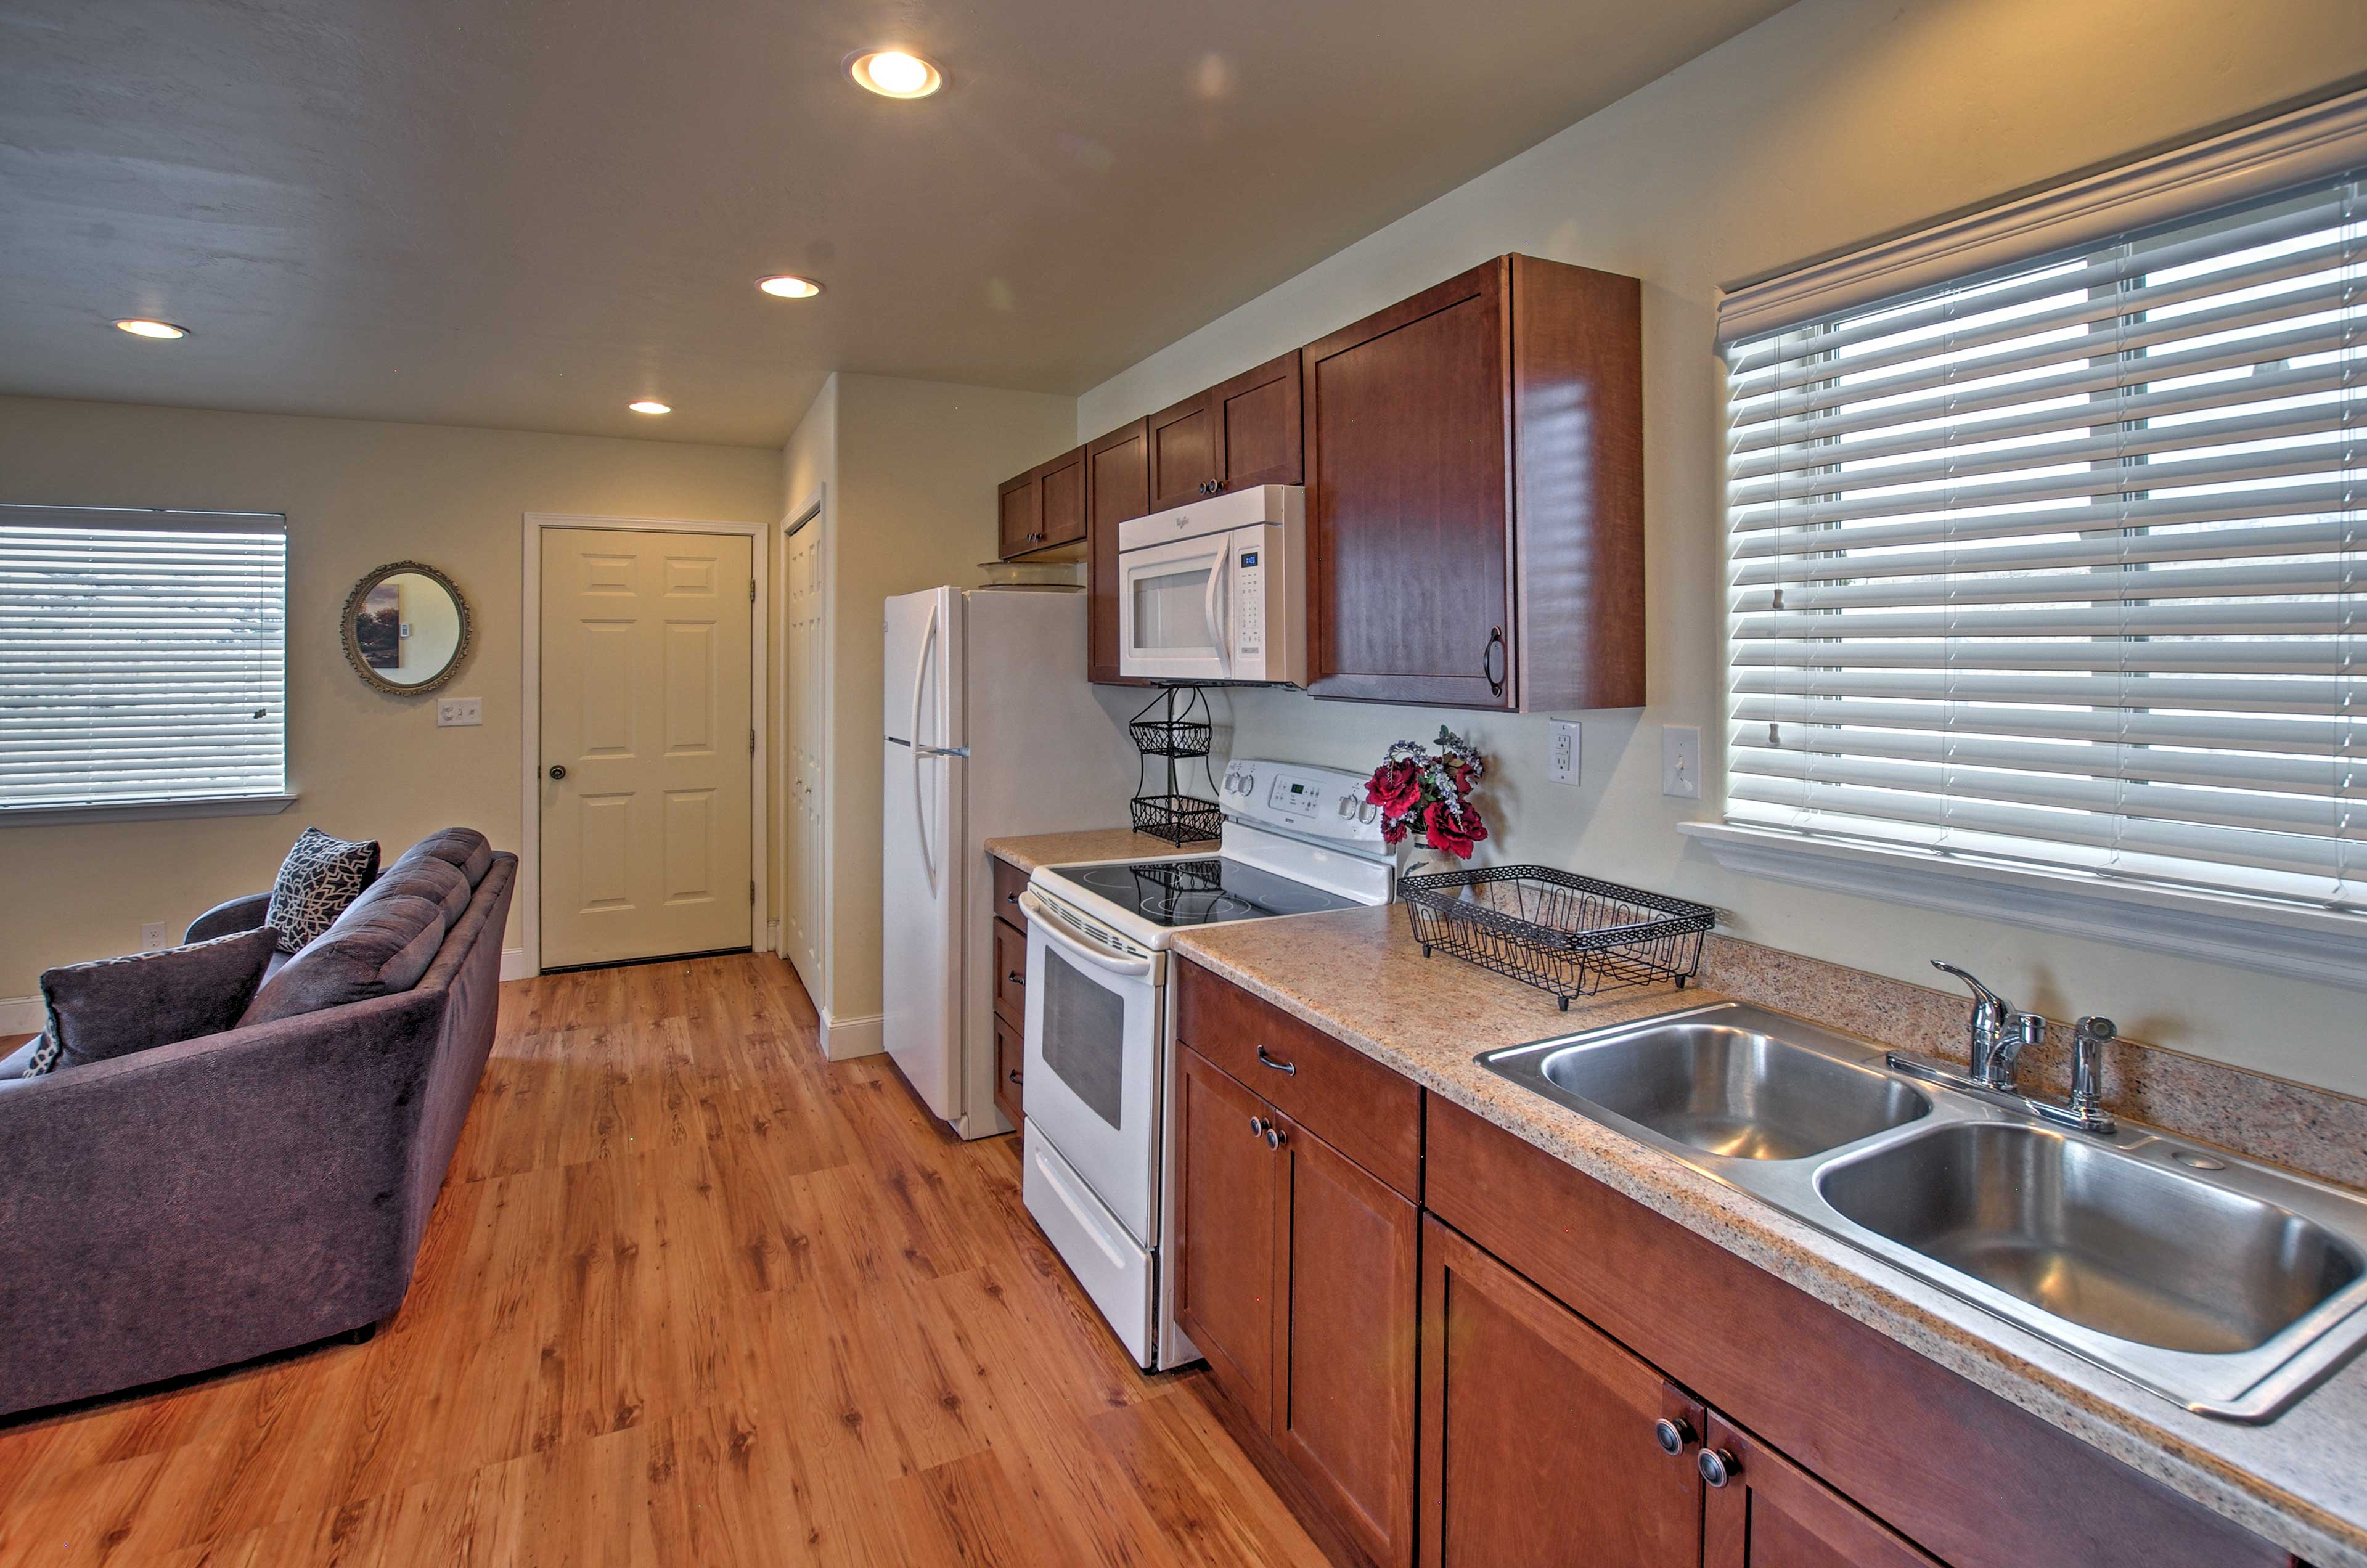 You'll love the convenience of the well-stocked kitchen.